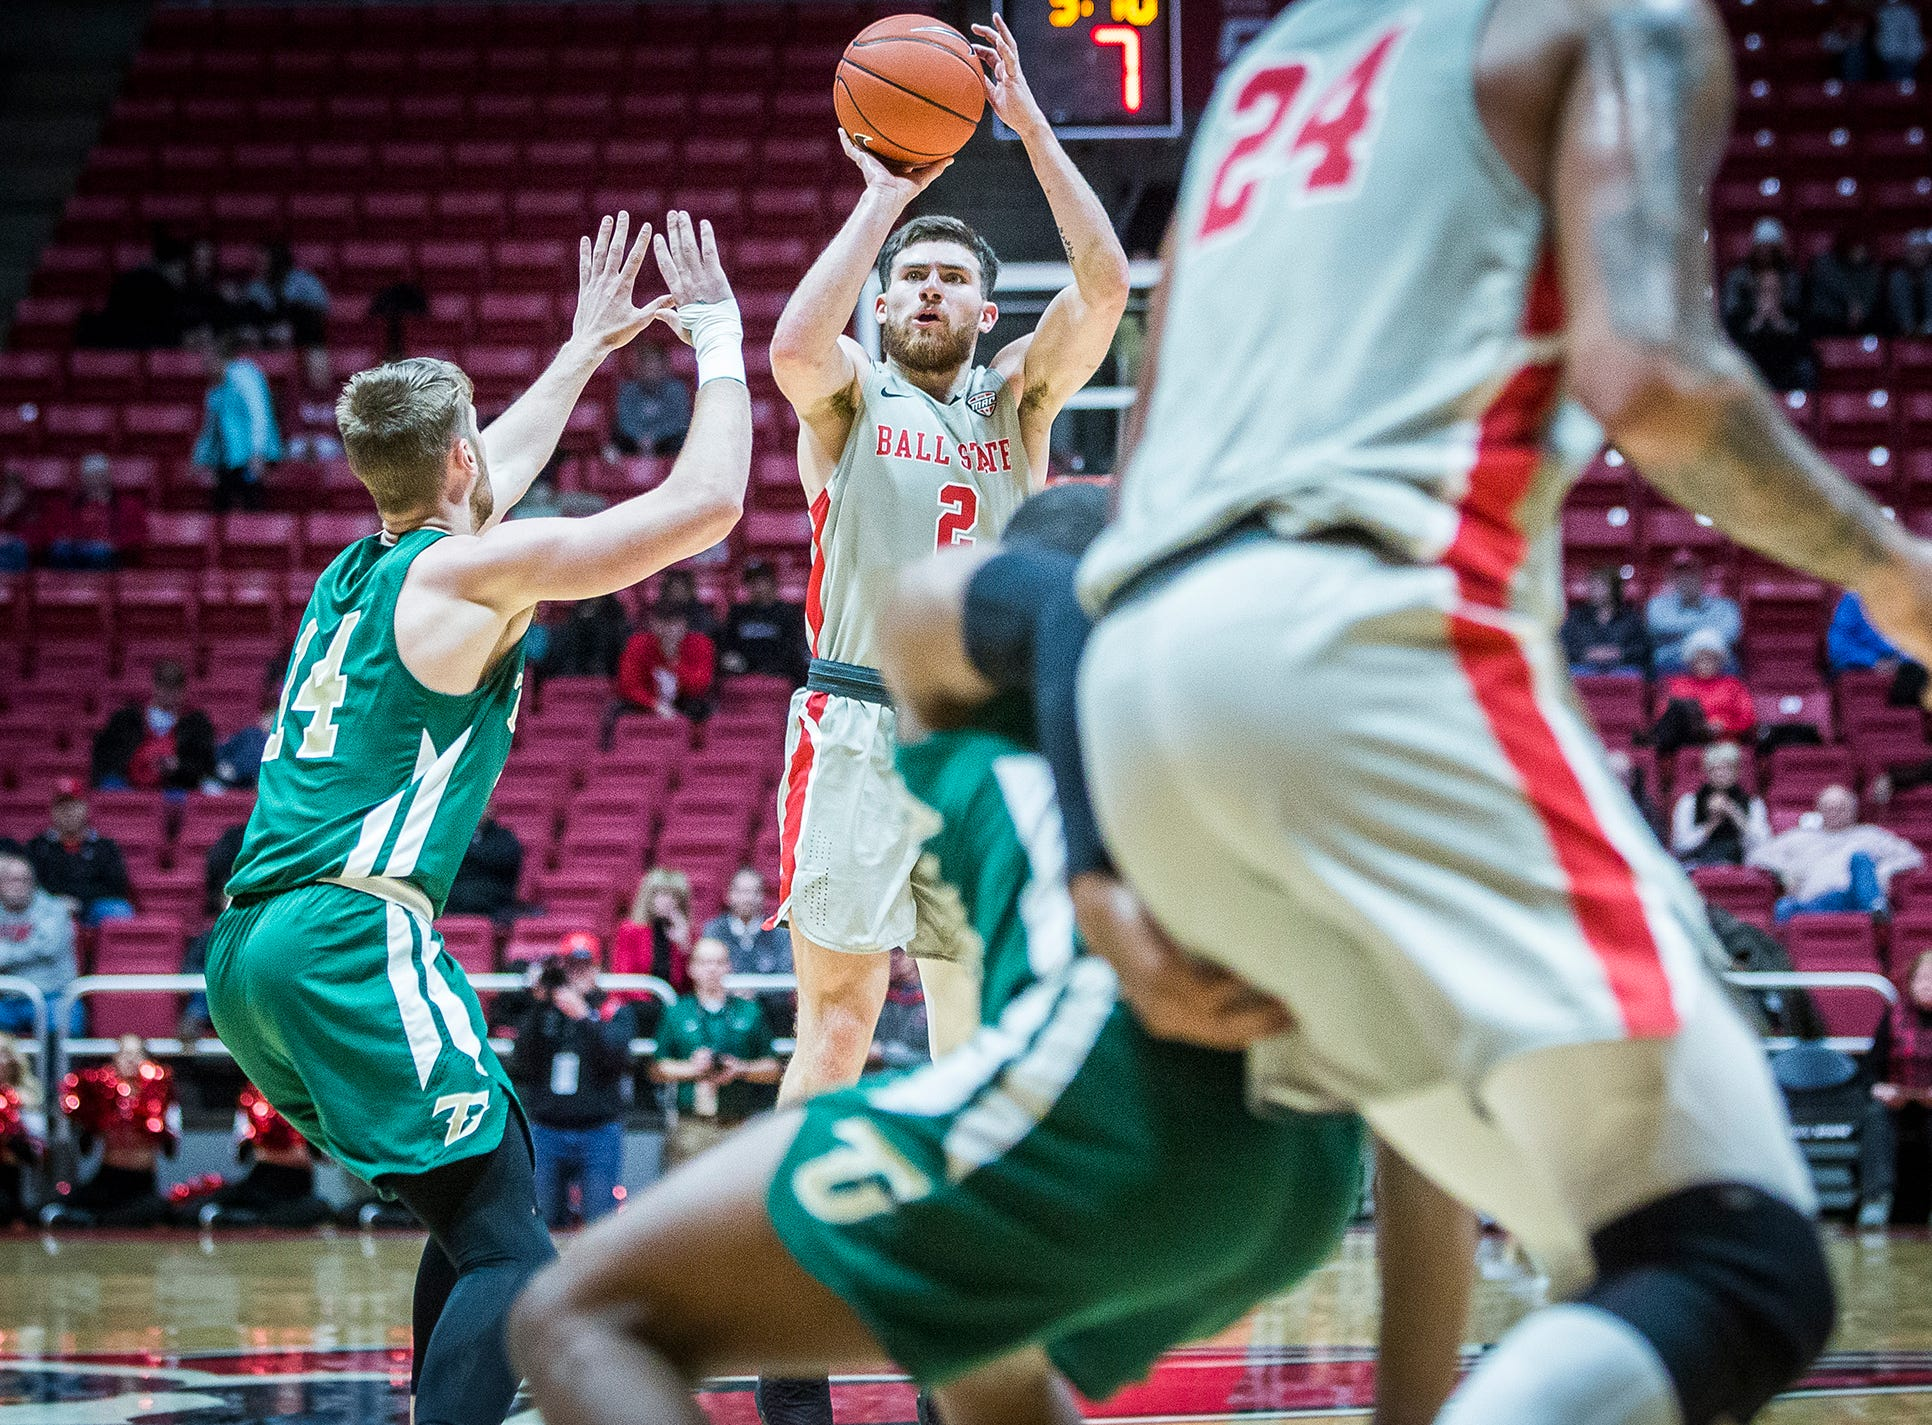 Ball State's Tayler Persons shoots past Tiffin's defense during their game at Worthen Arena Tuesday, Nov. 27, 2018.